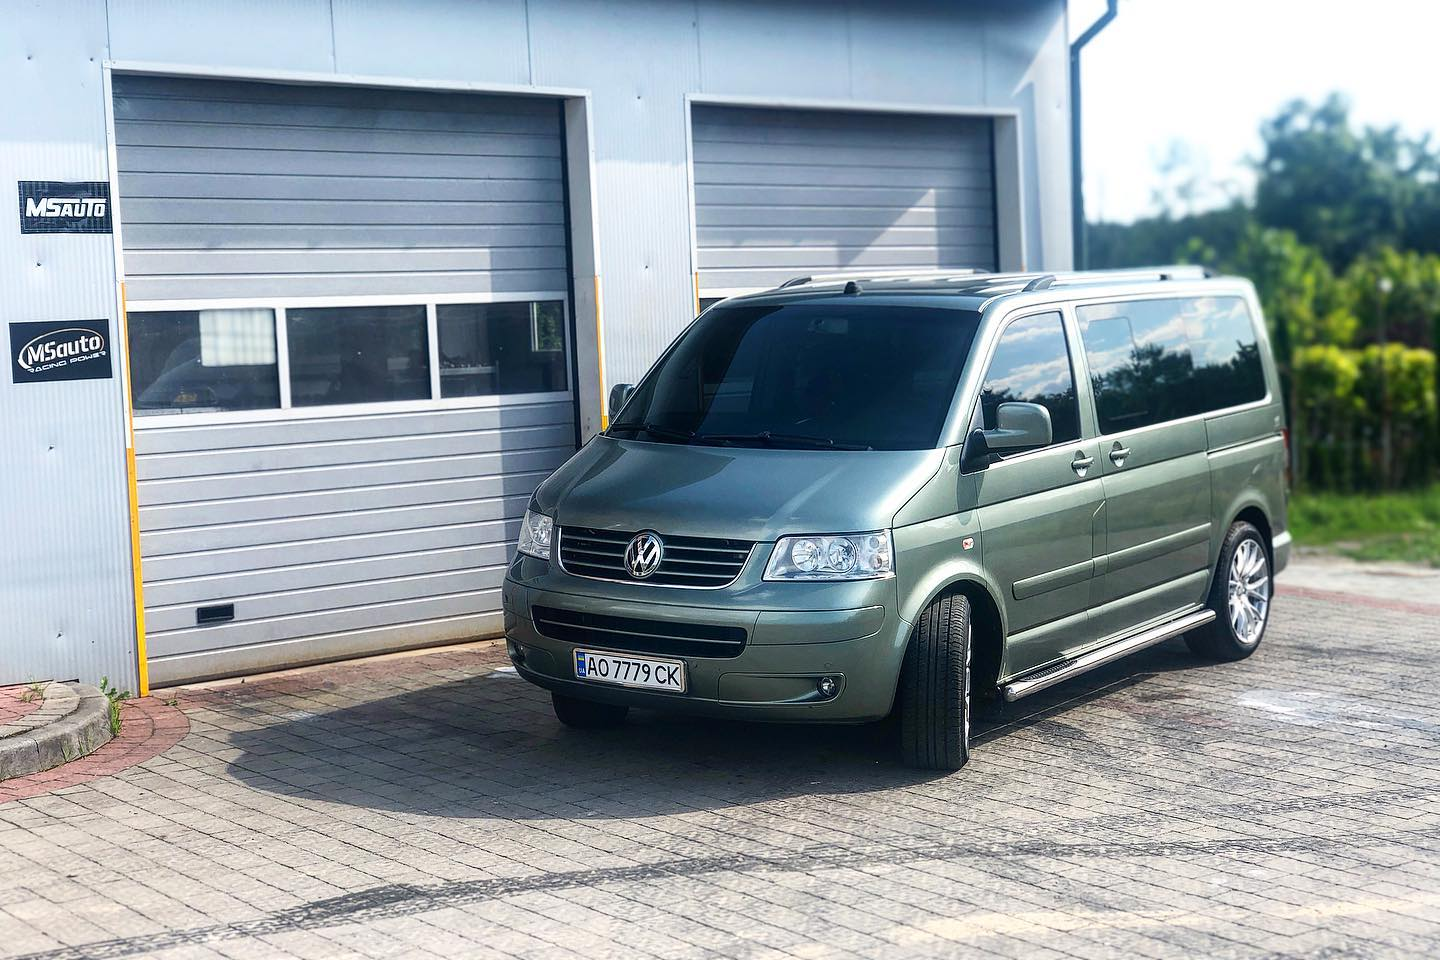 Чіп тюнінг Vw Transporter 2.5TDI 130hp